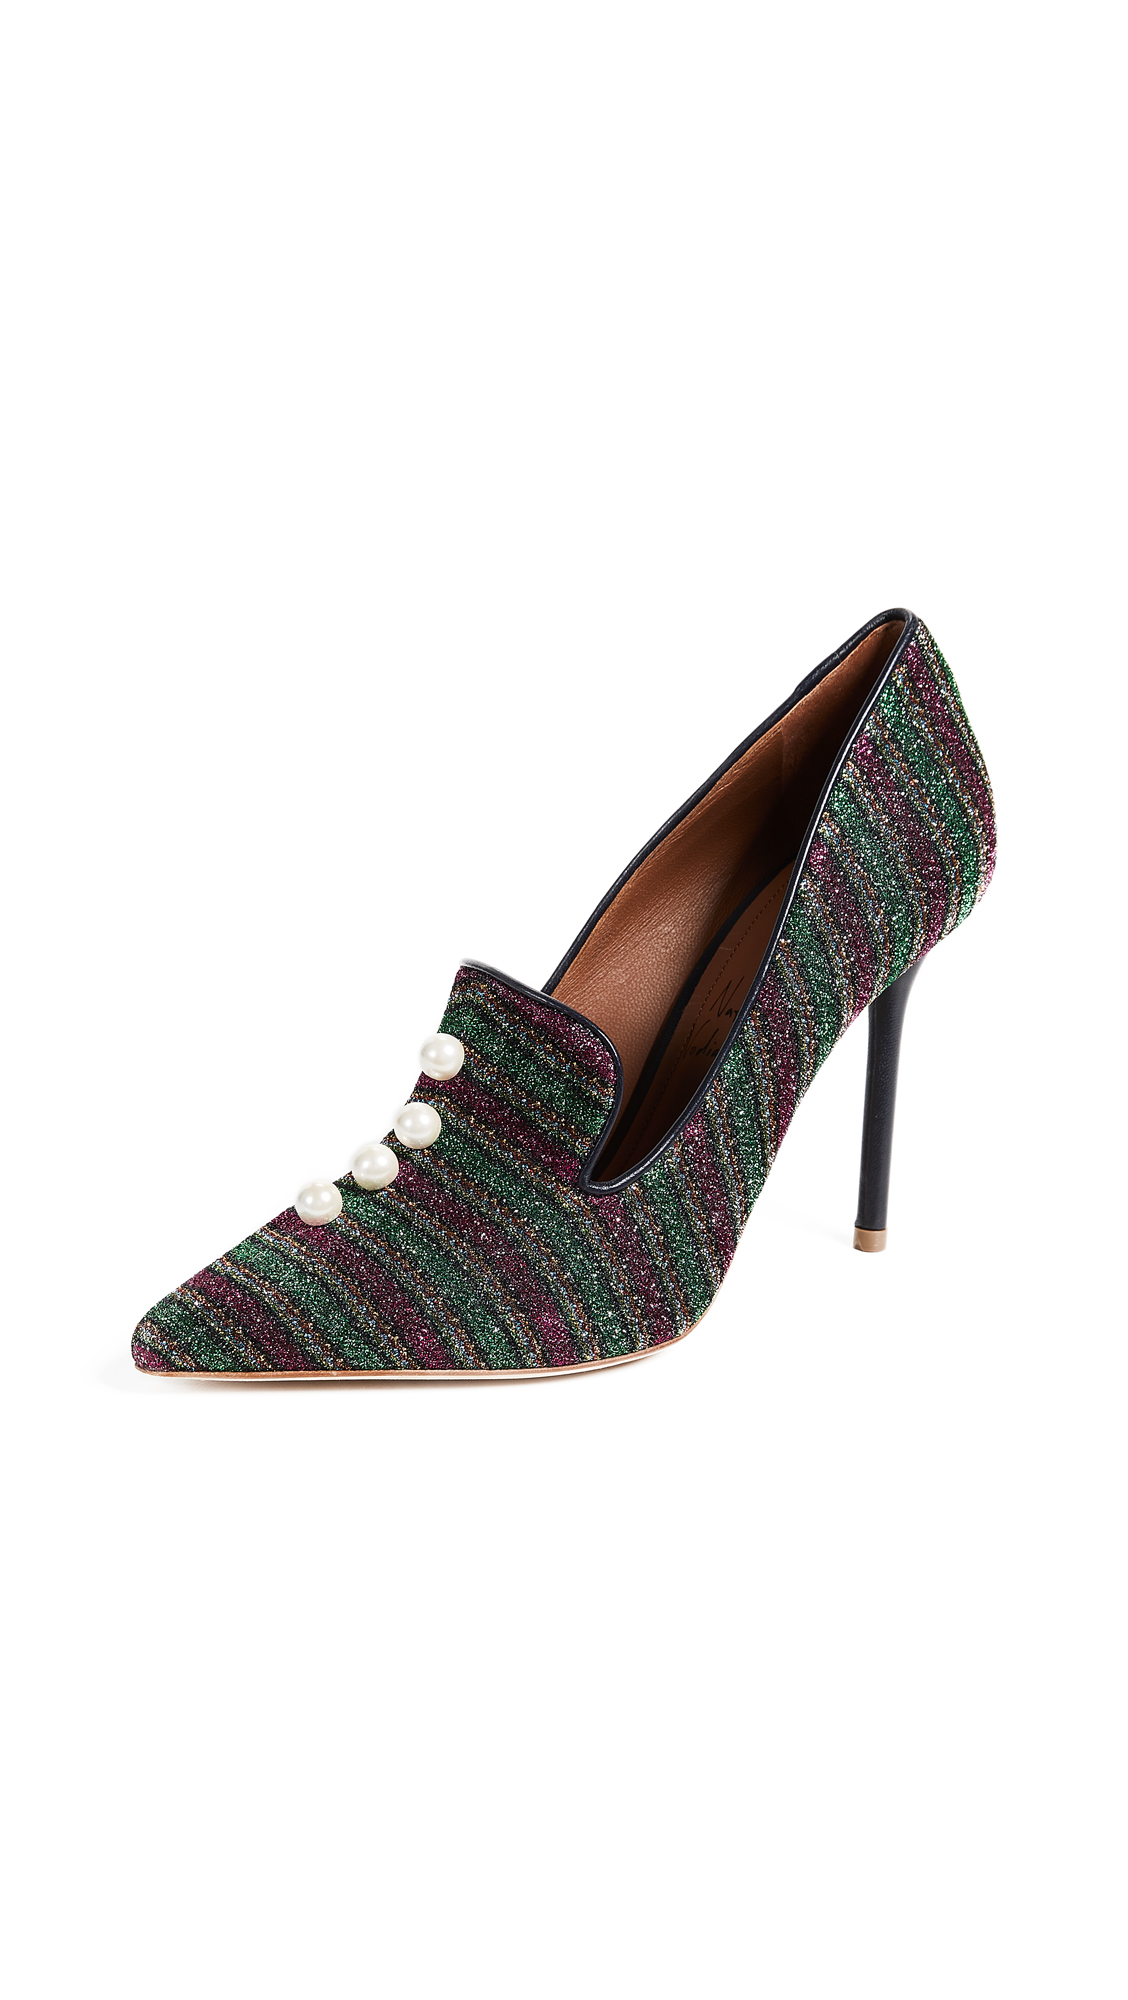 Malone Souliers Lubov Pumps - Black/Fuchsia/Green/Midnight